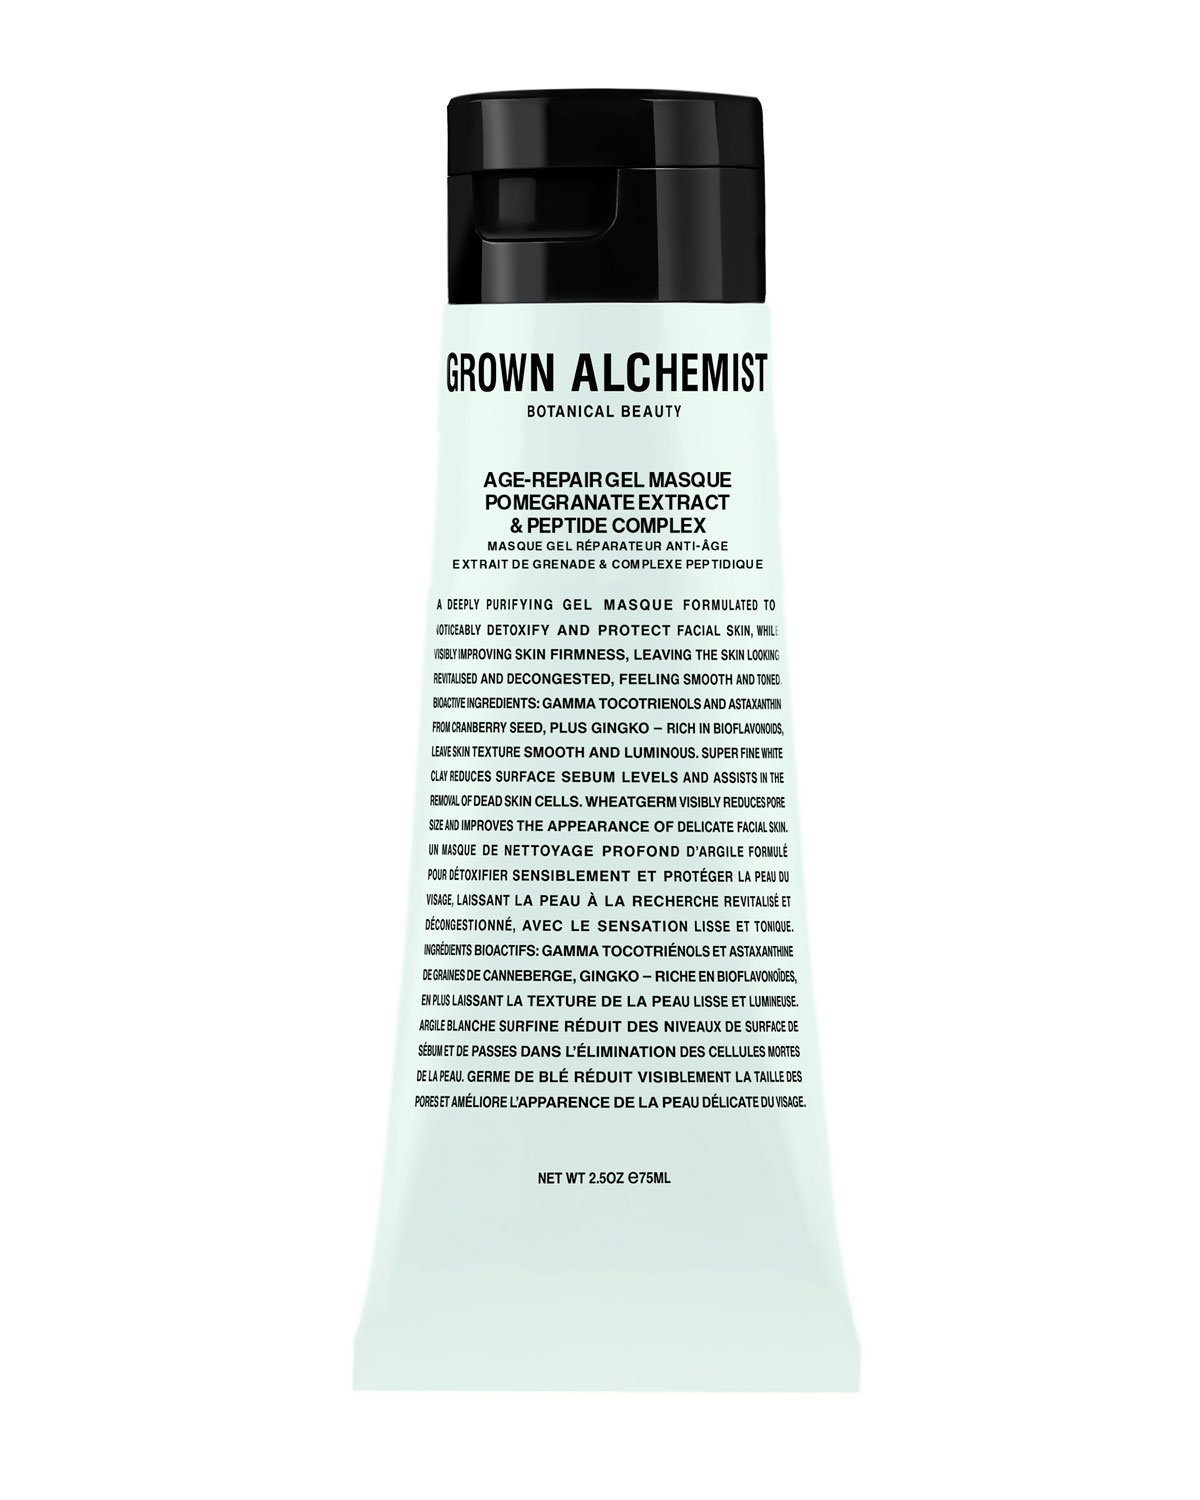 GROWN ALCHEMIST Age-Repair Gel Masque: Pomegranate & Amino Protein Complex, 2.5 Oz./ 75 Ml